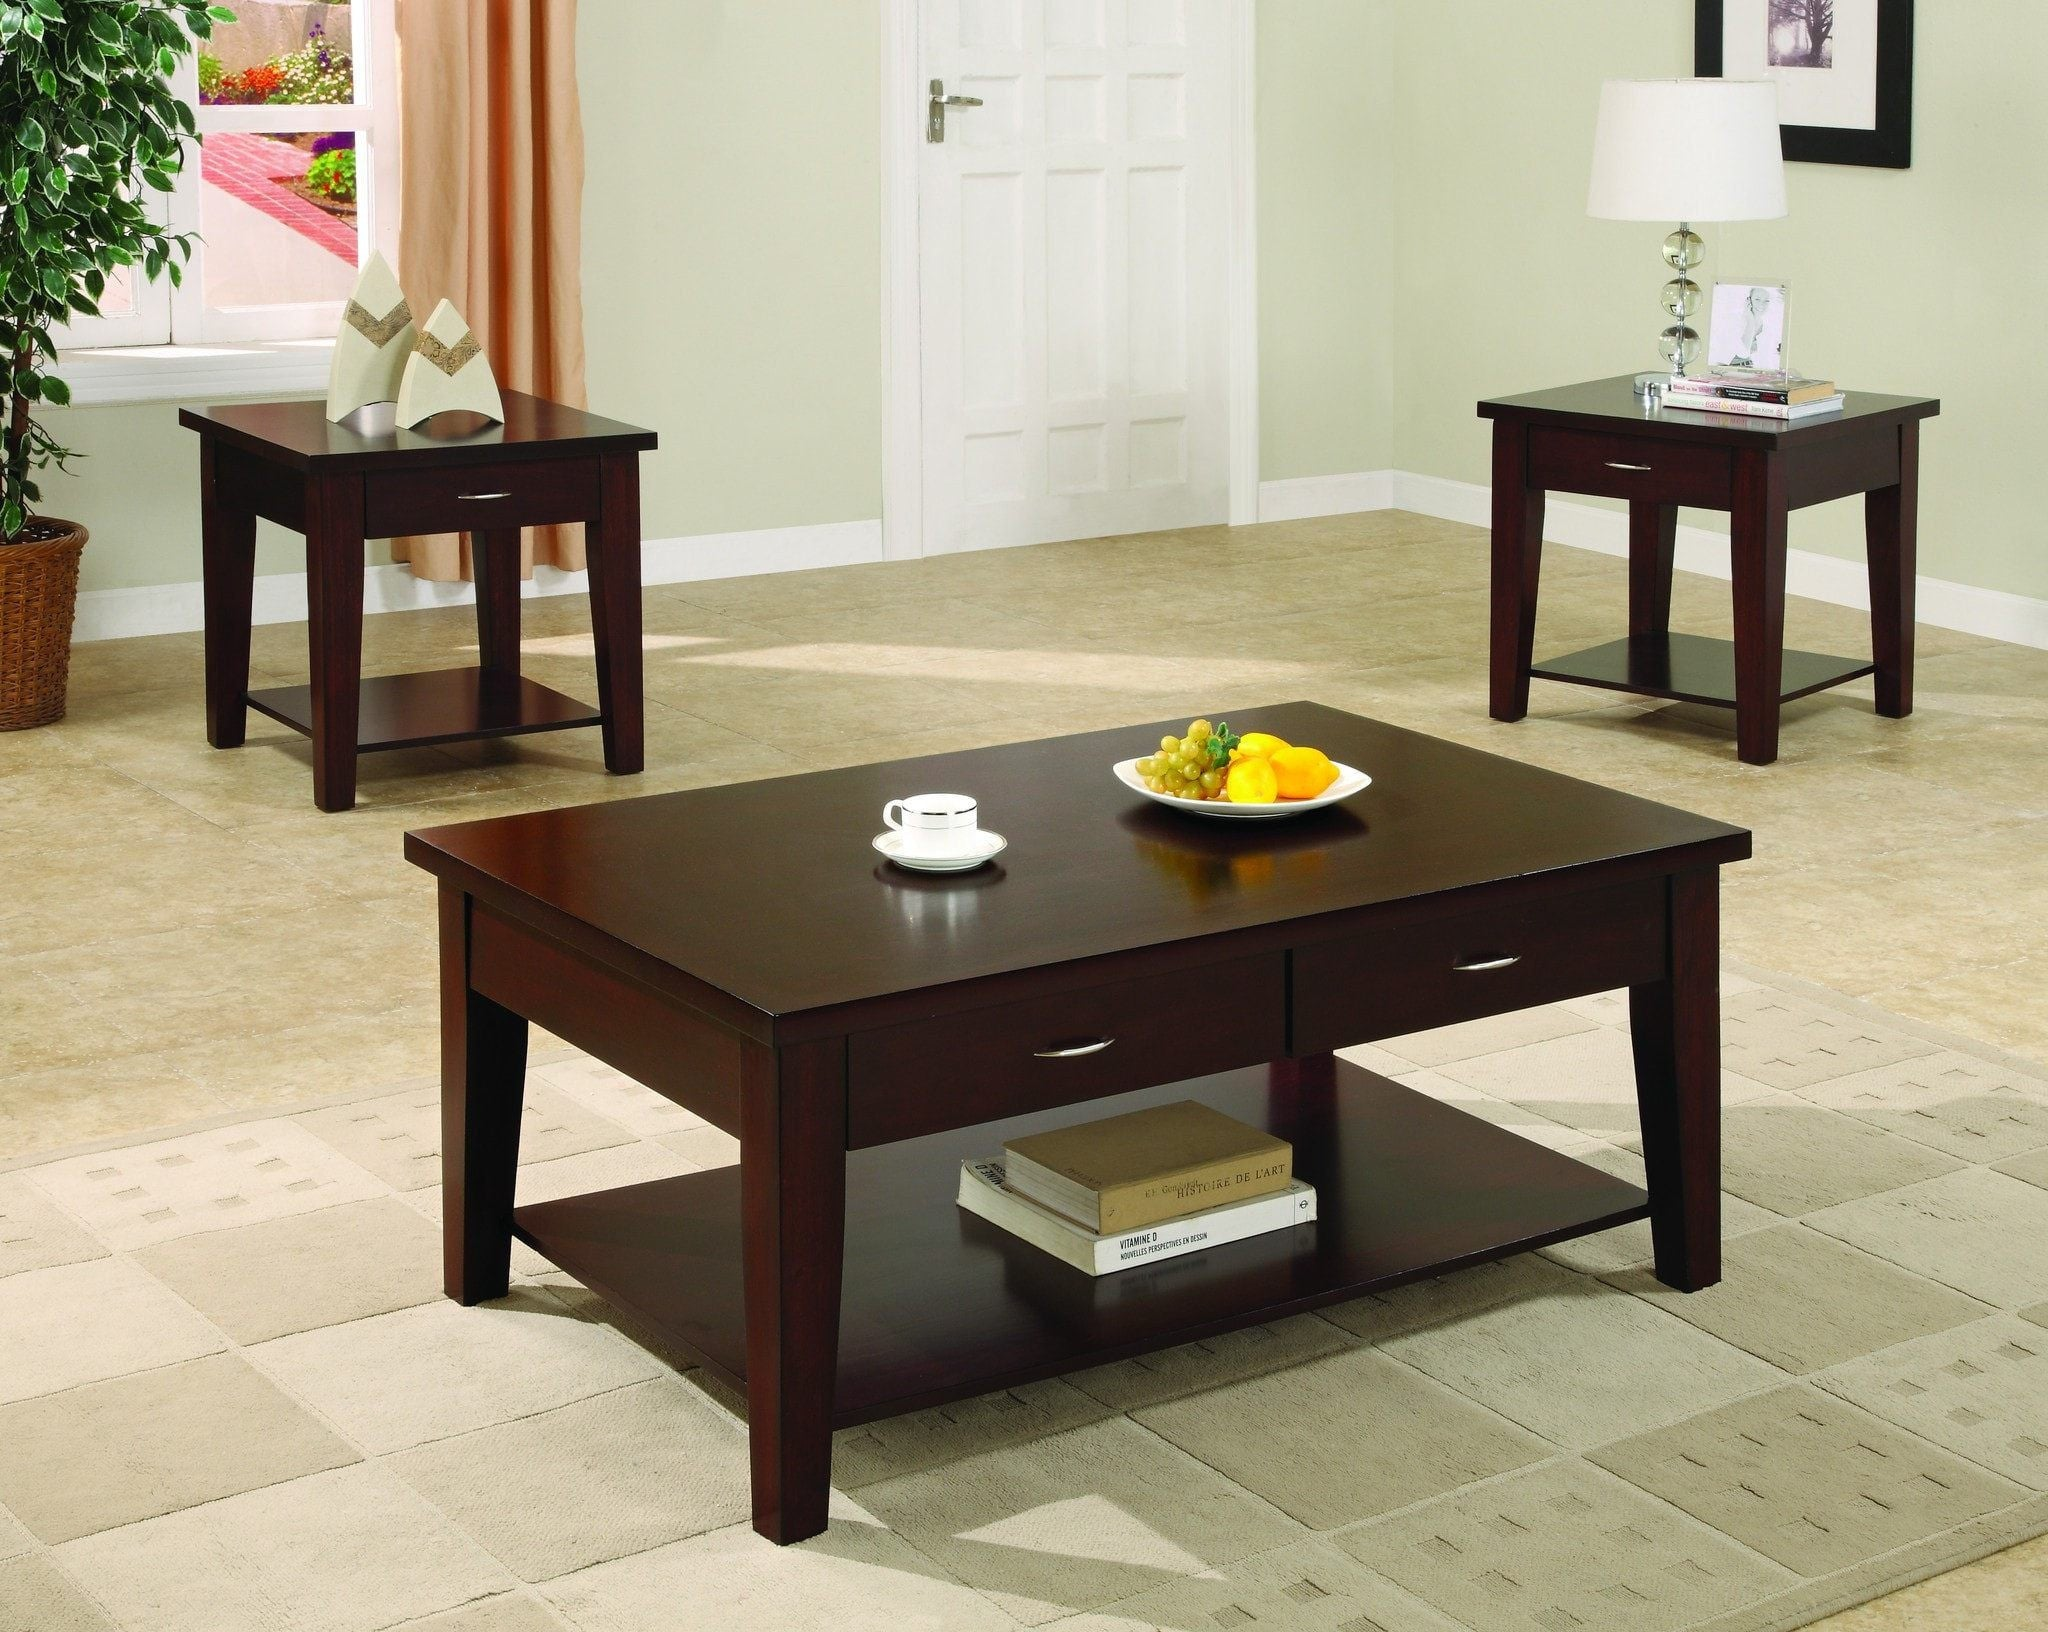 with in grateful set and that always jane stool table for coffee guests stools sets shape tables gallery are view round